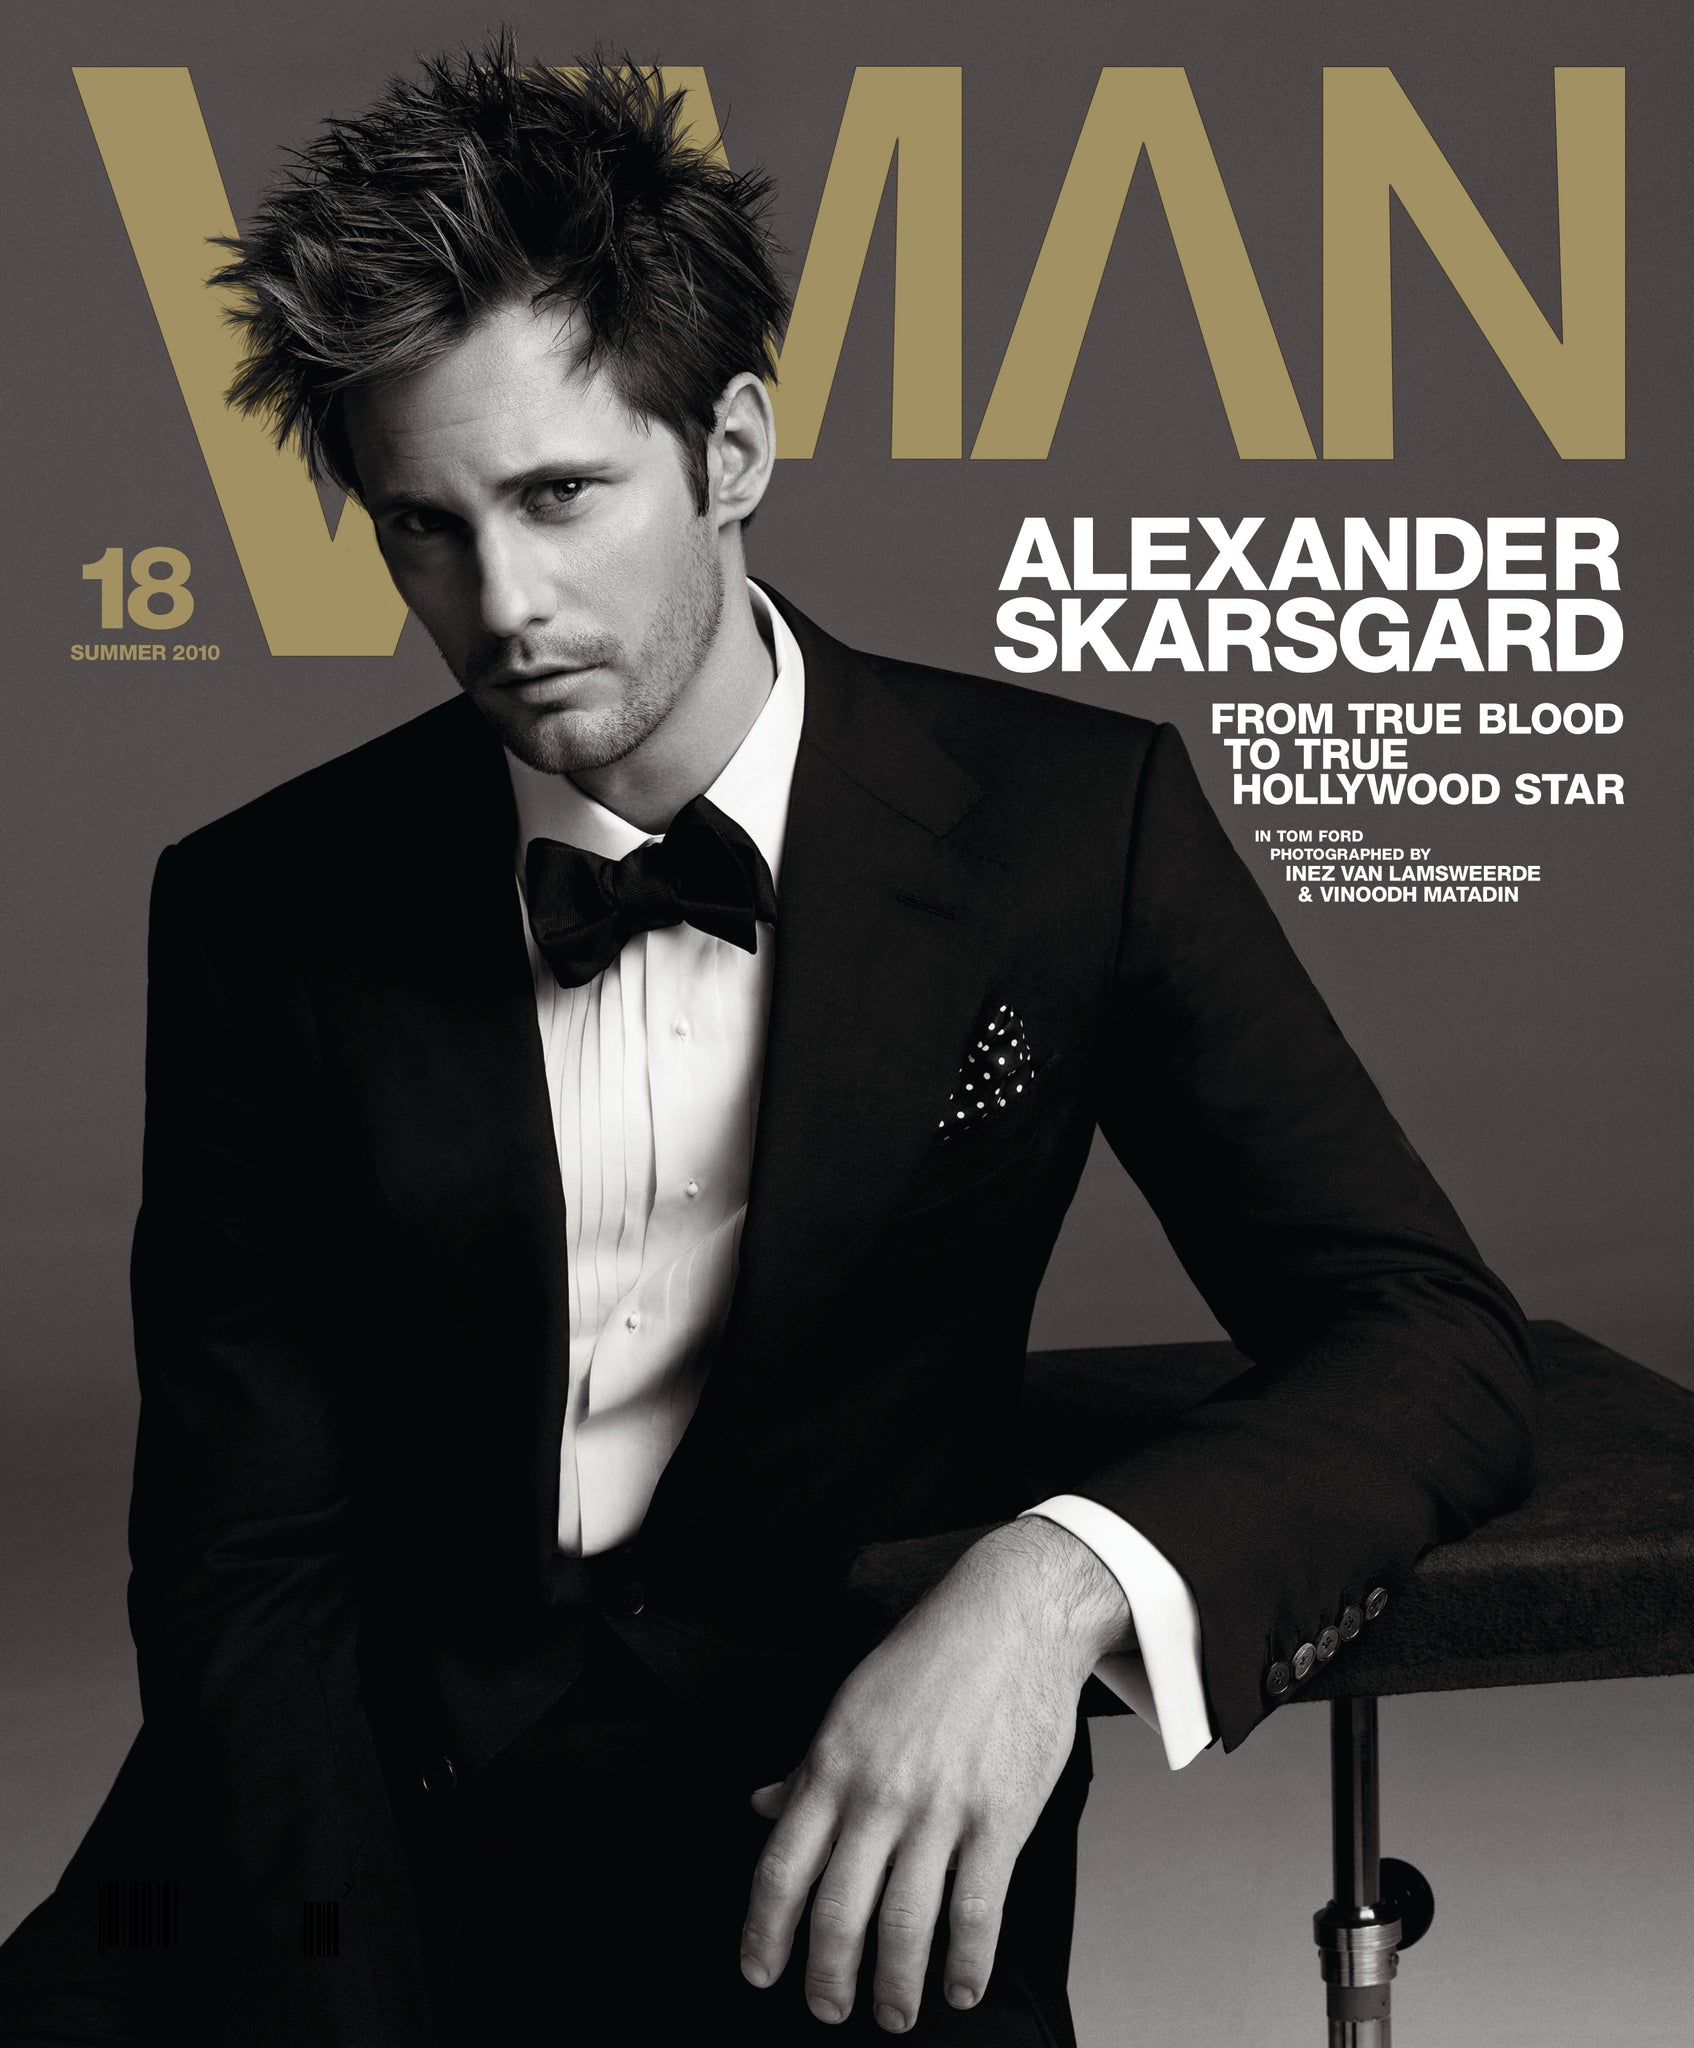 VMAN 18 THE SCANDINAVIAN ISSUE